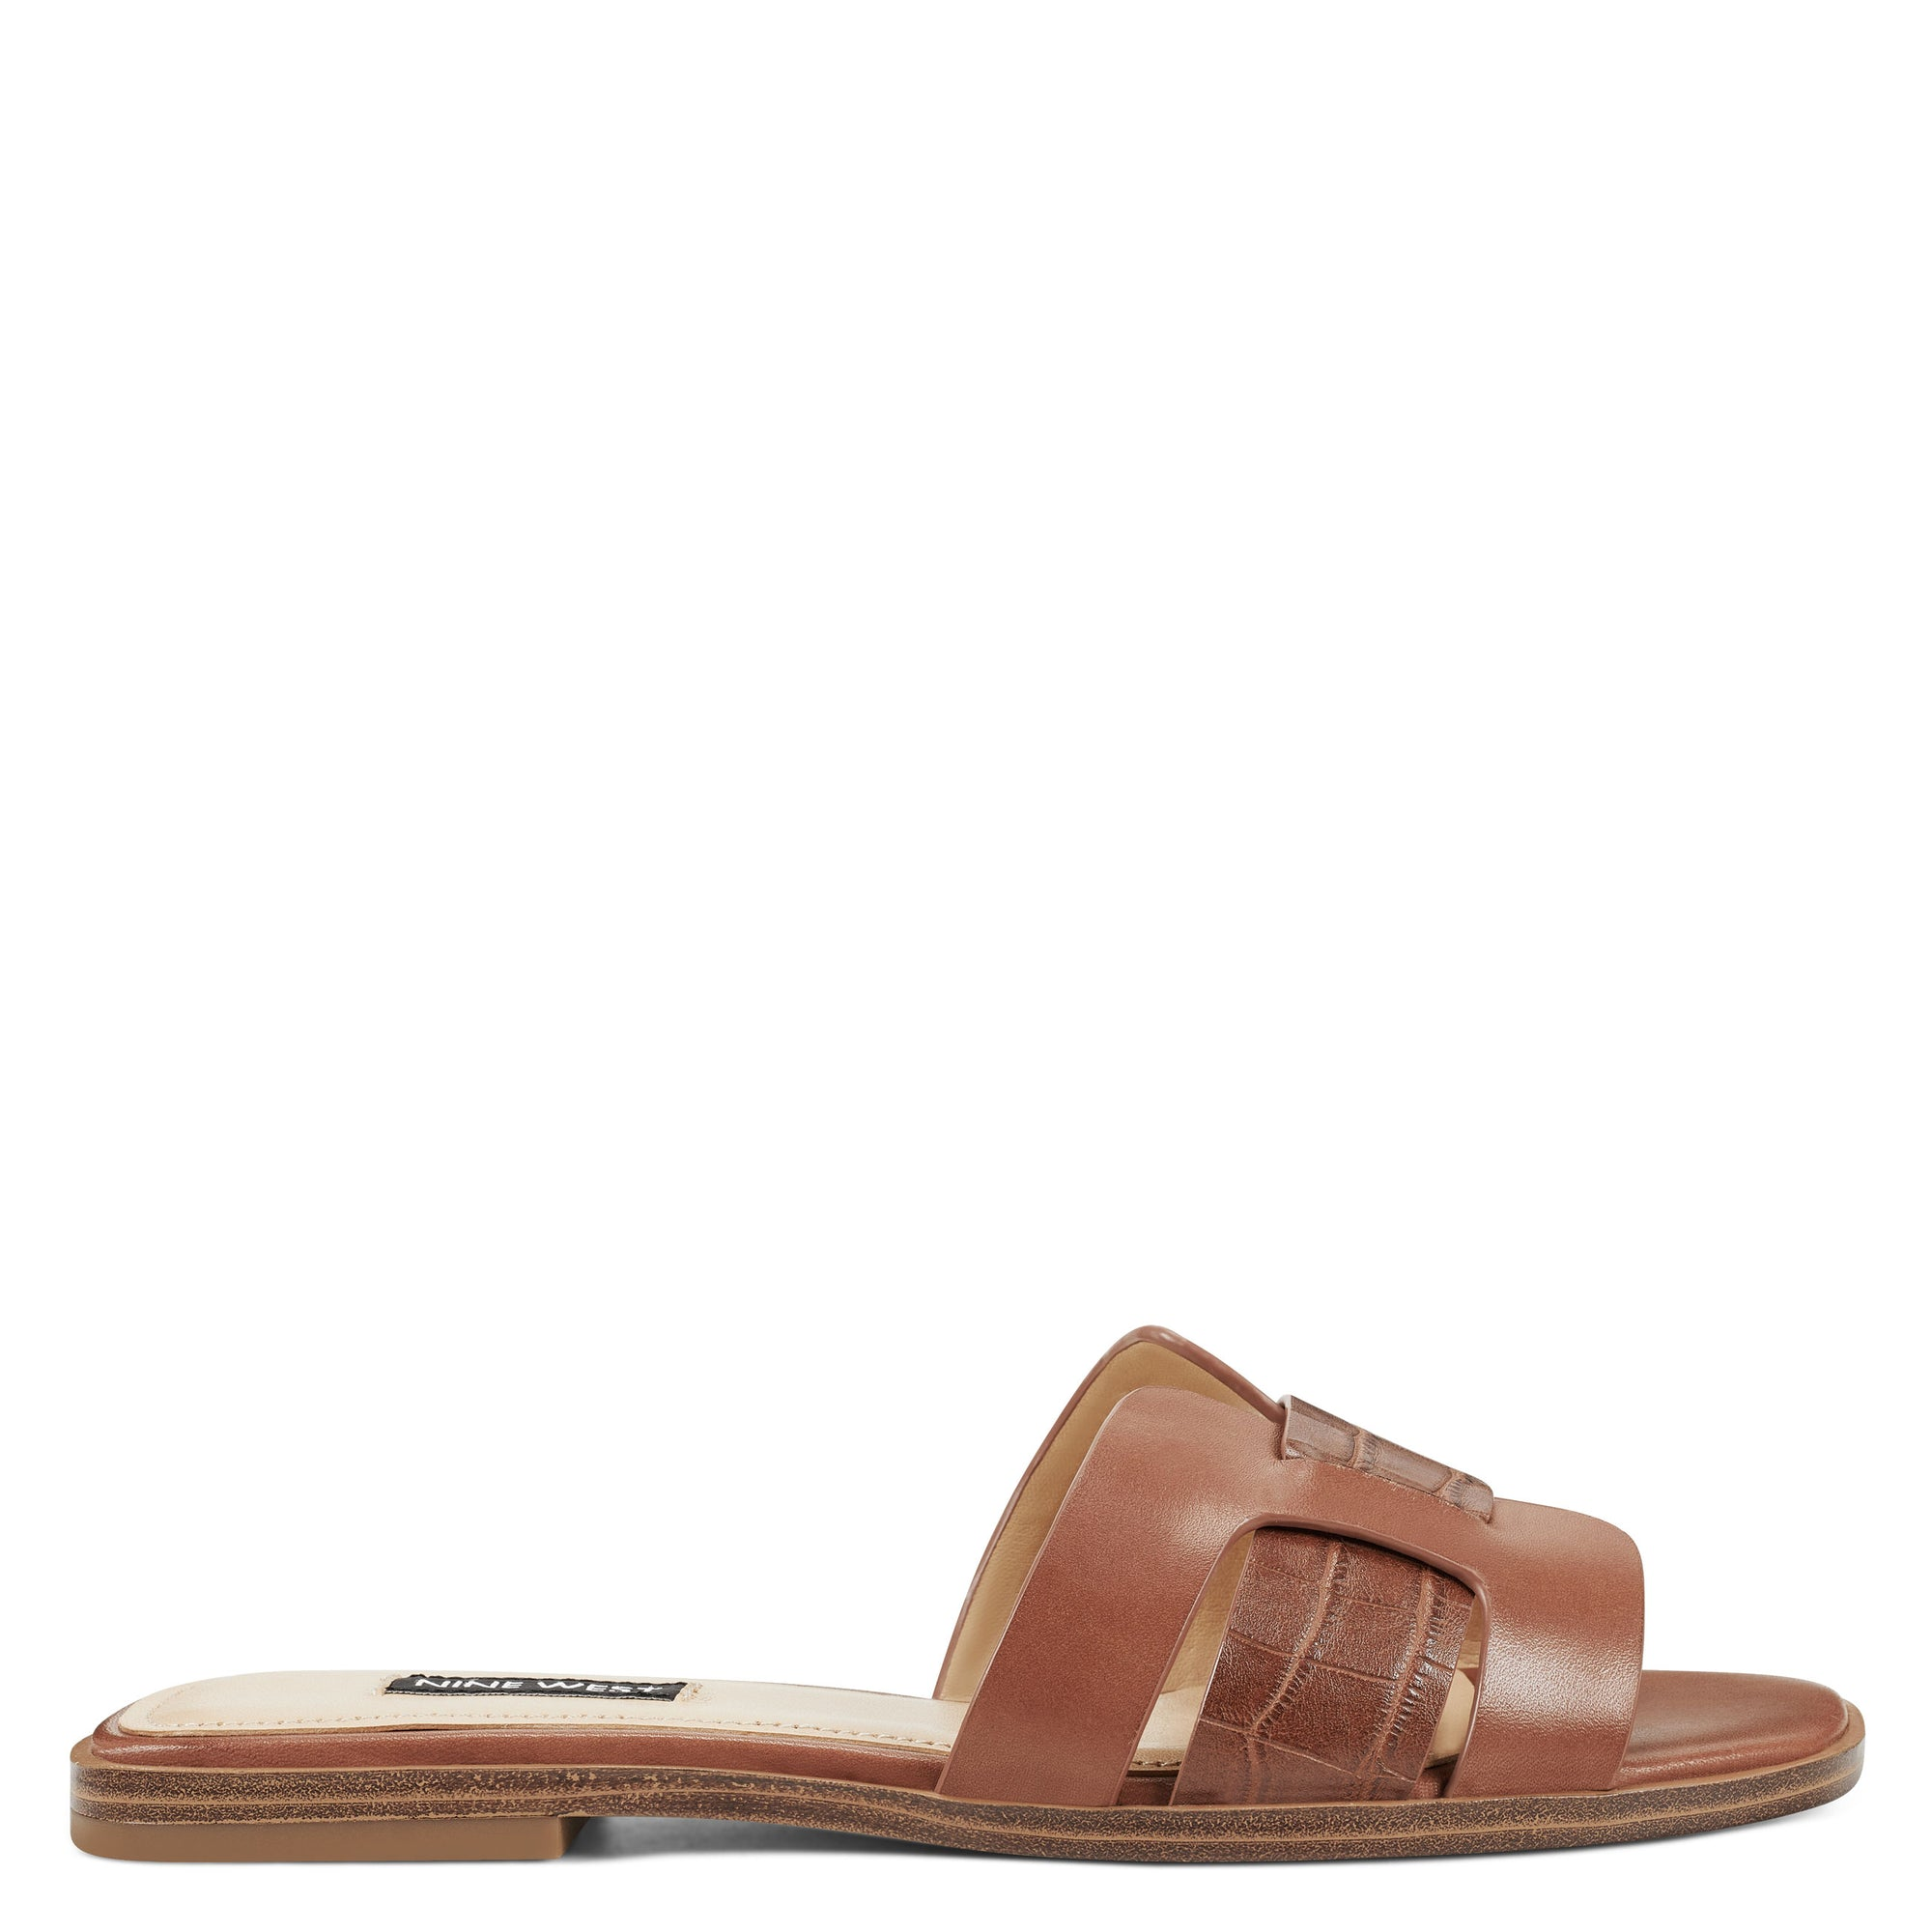 Genuine Flat Slide Sandals